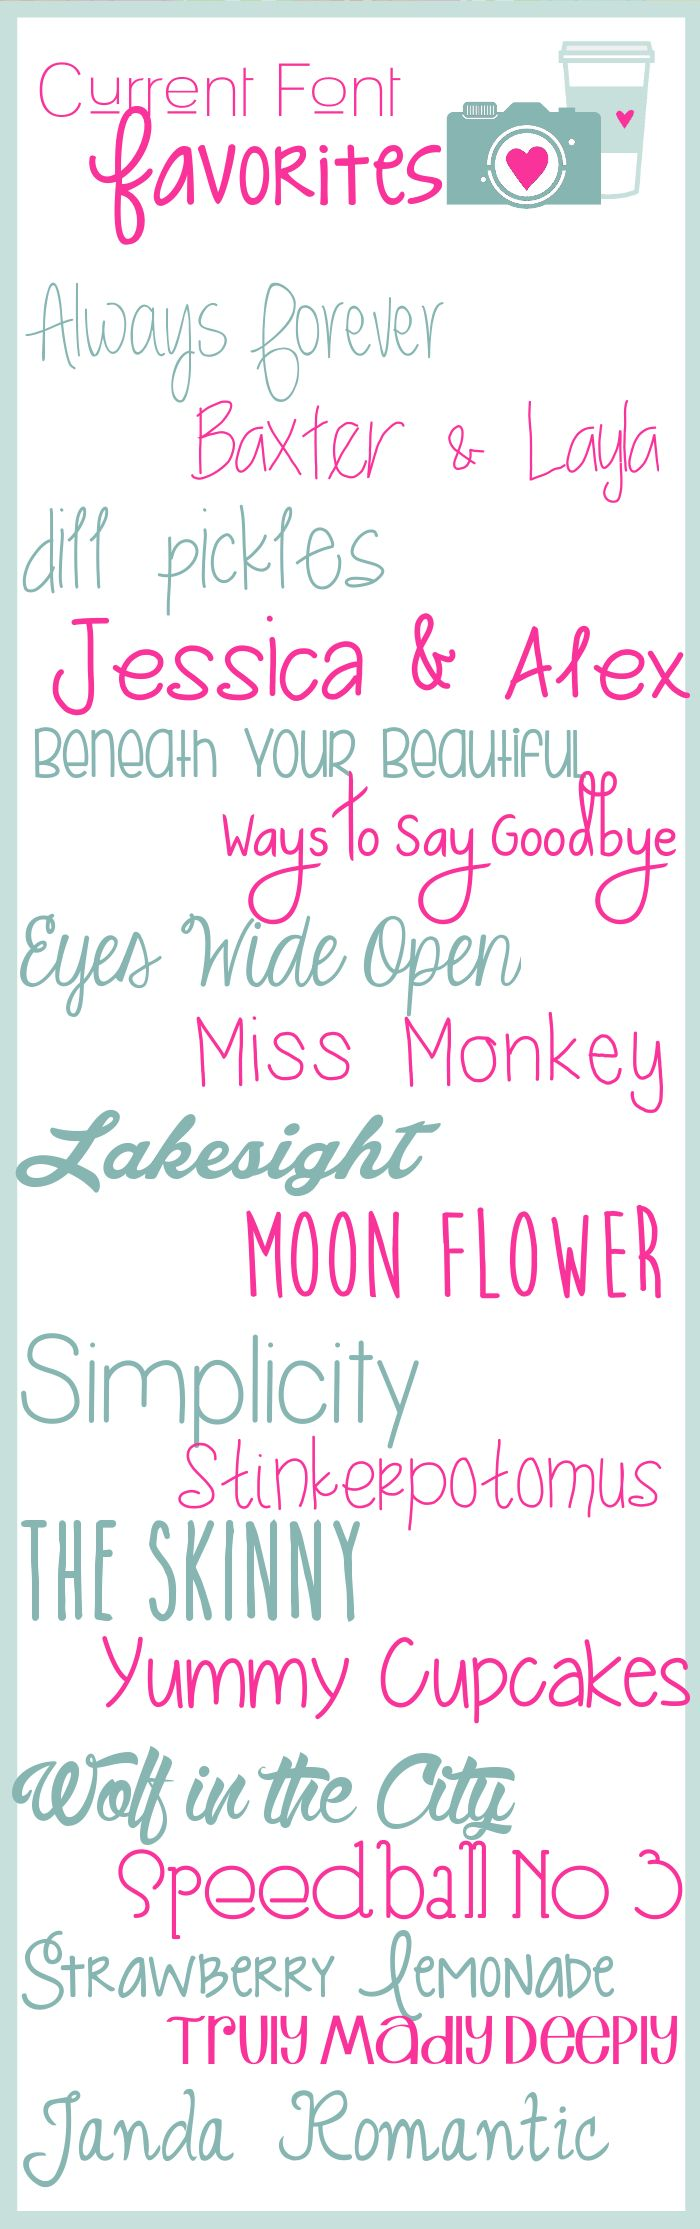 Current Font Favorites ~~ {19 free fonts w/ links}